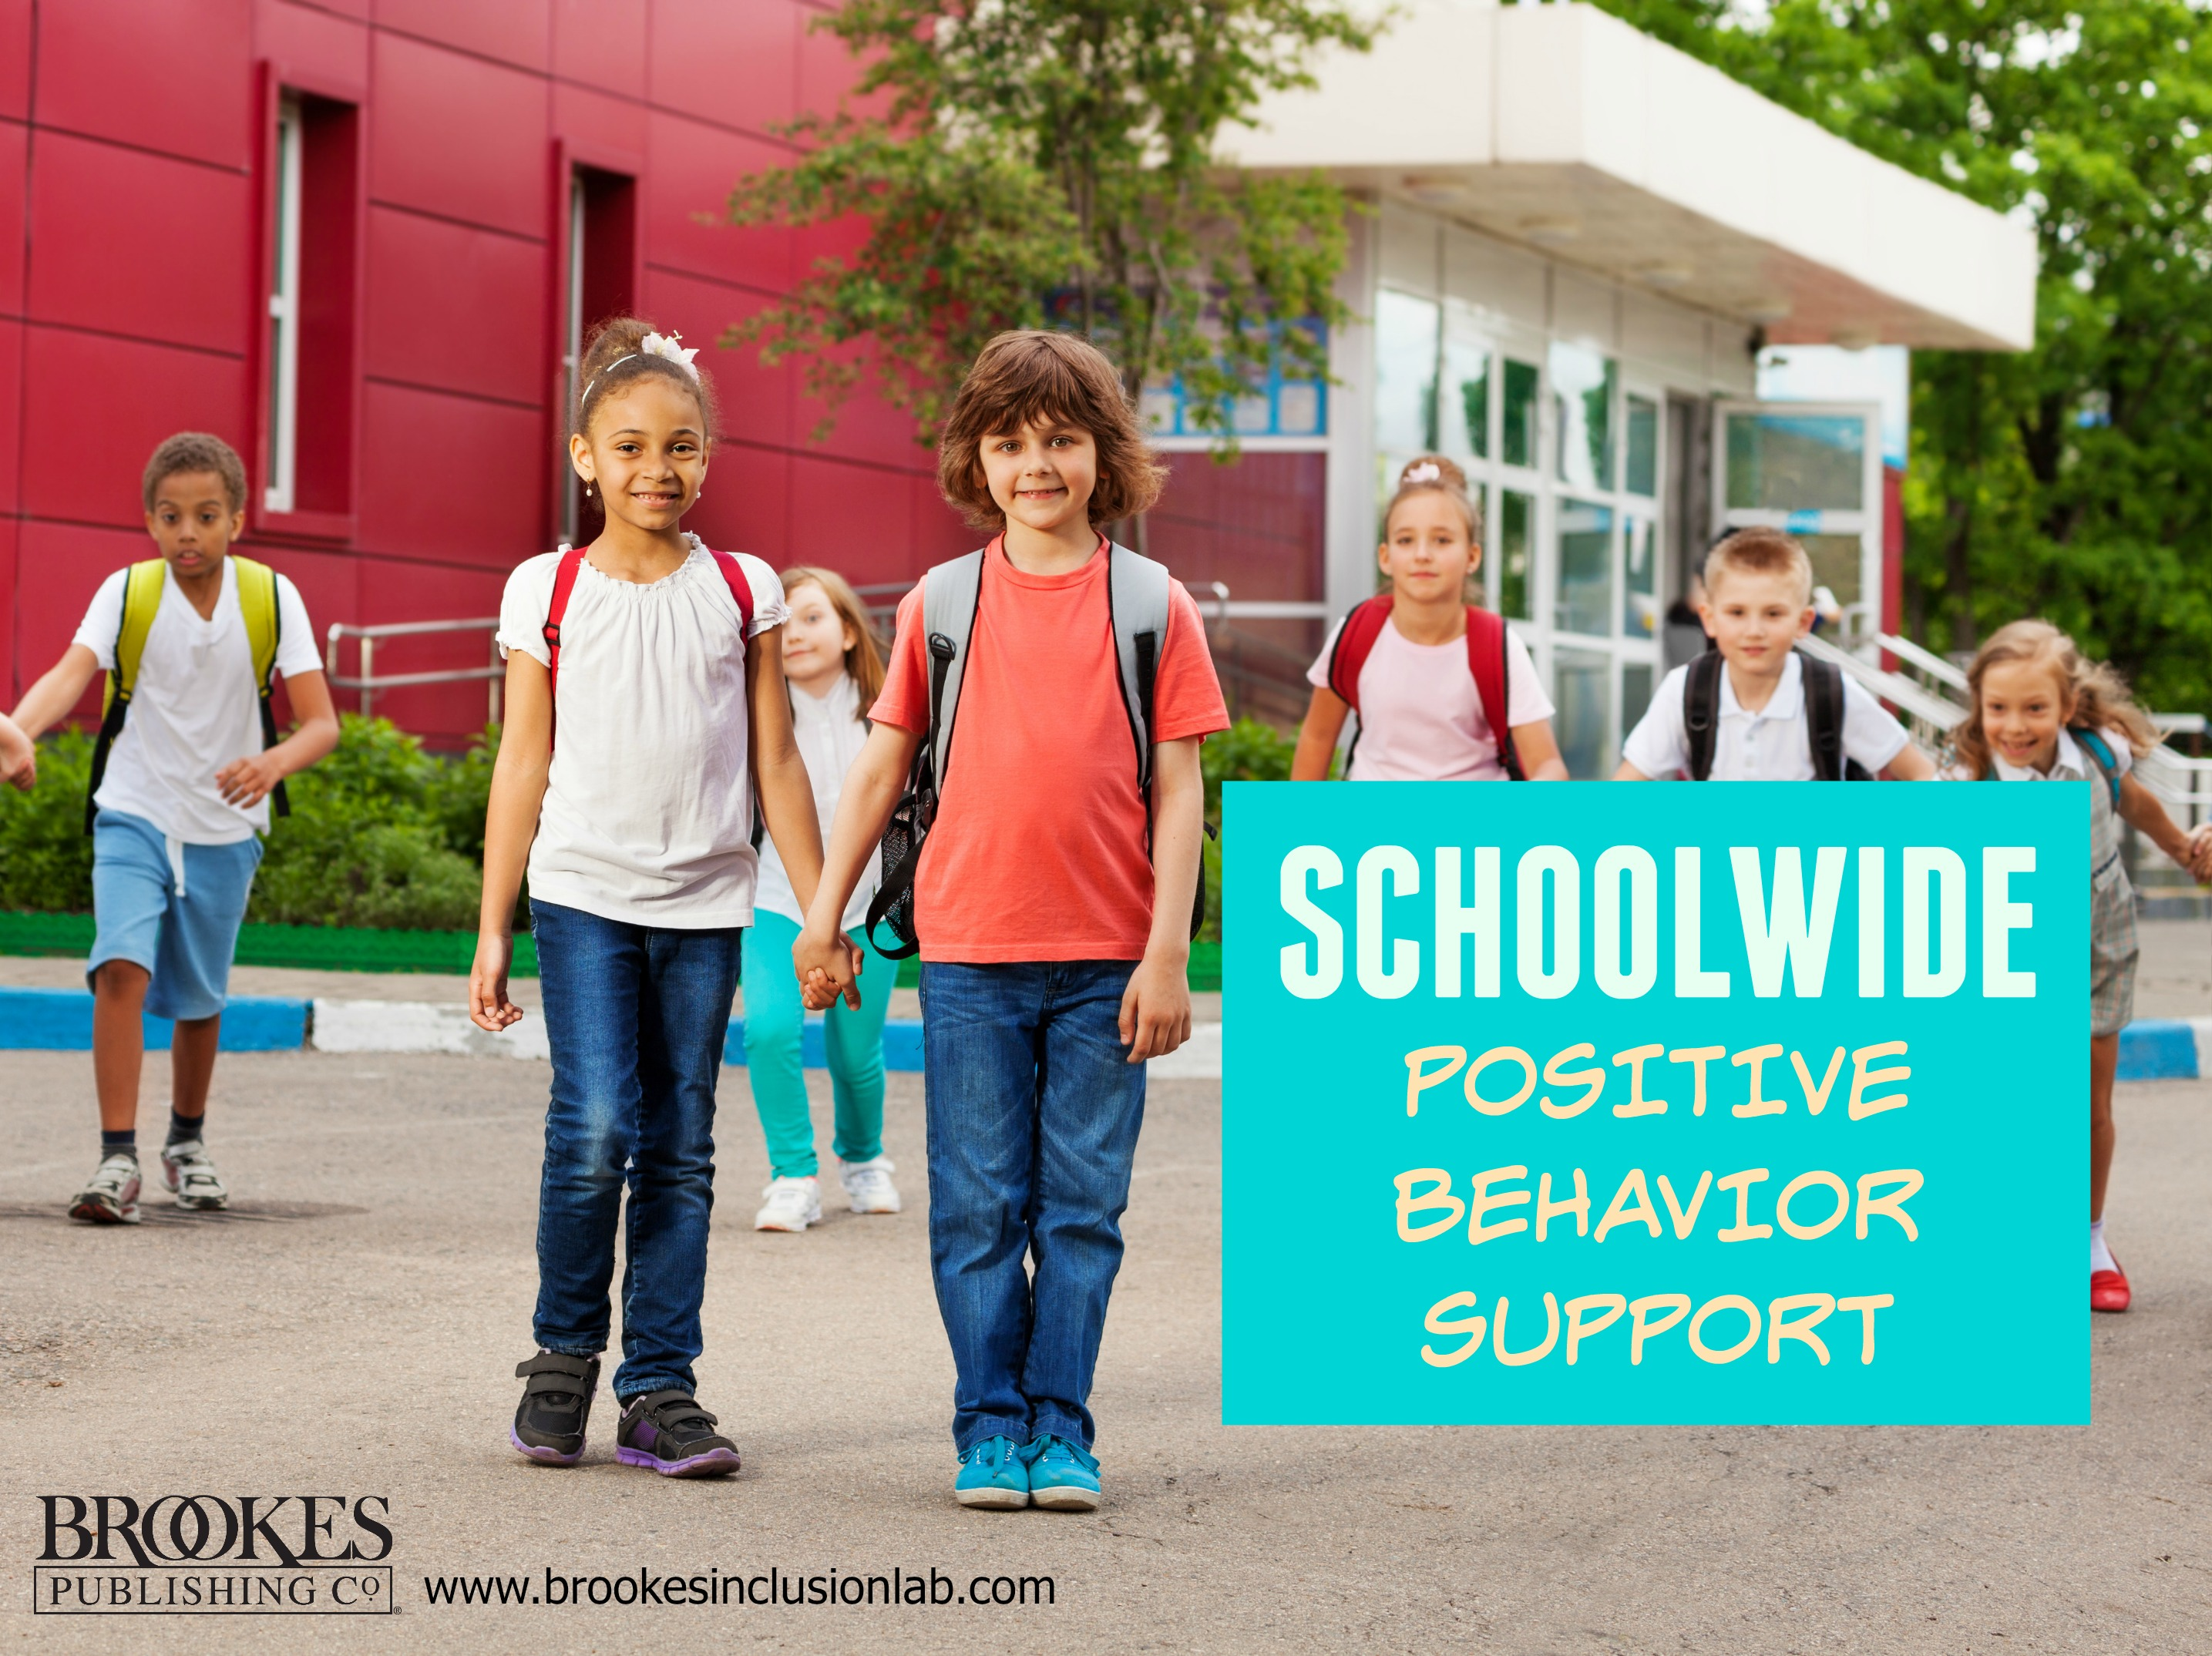 7 Steps to Successful Schoolwide Positive Behavior Support